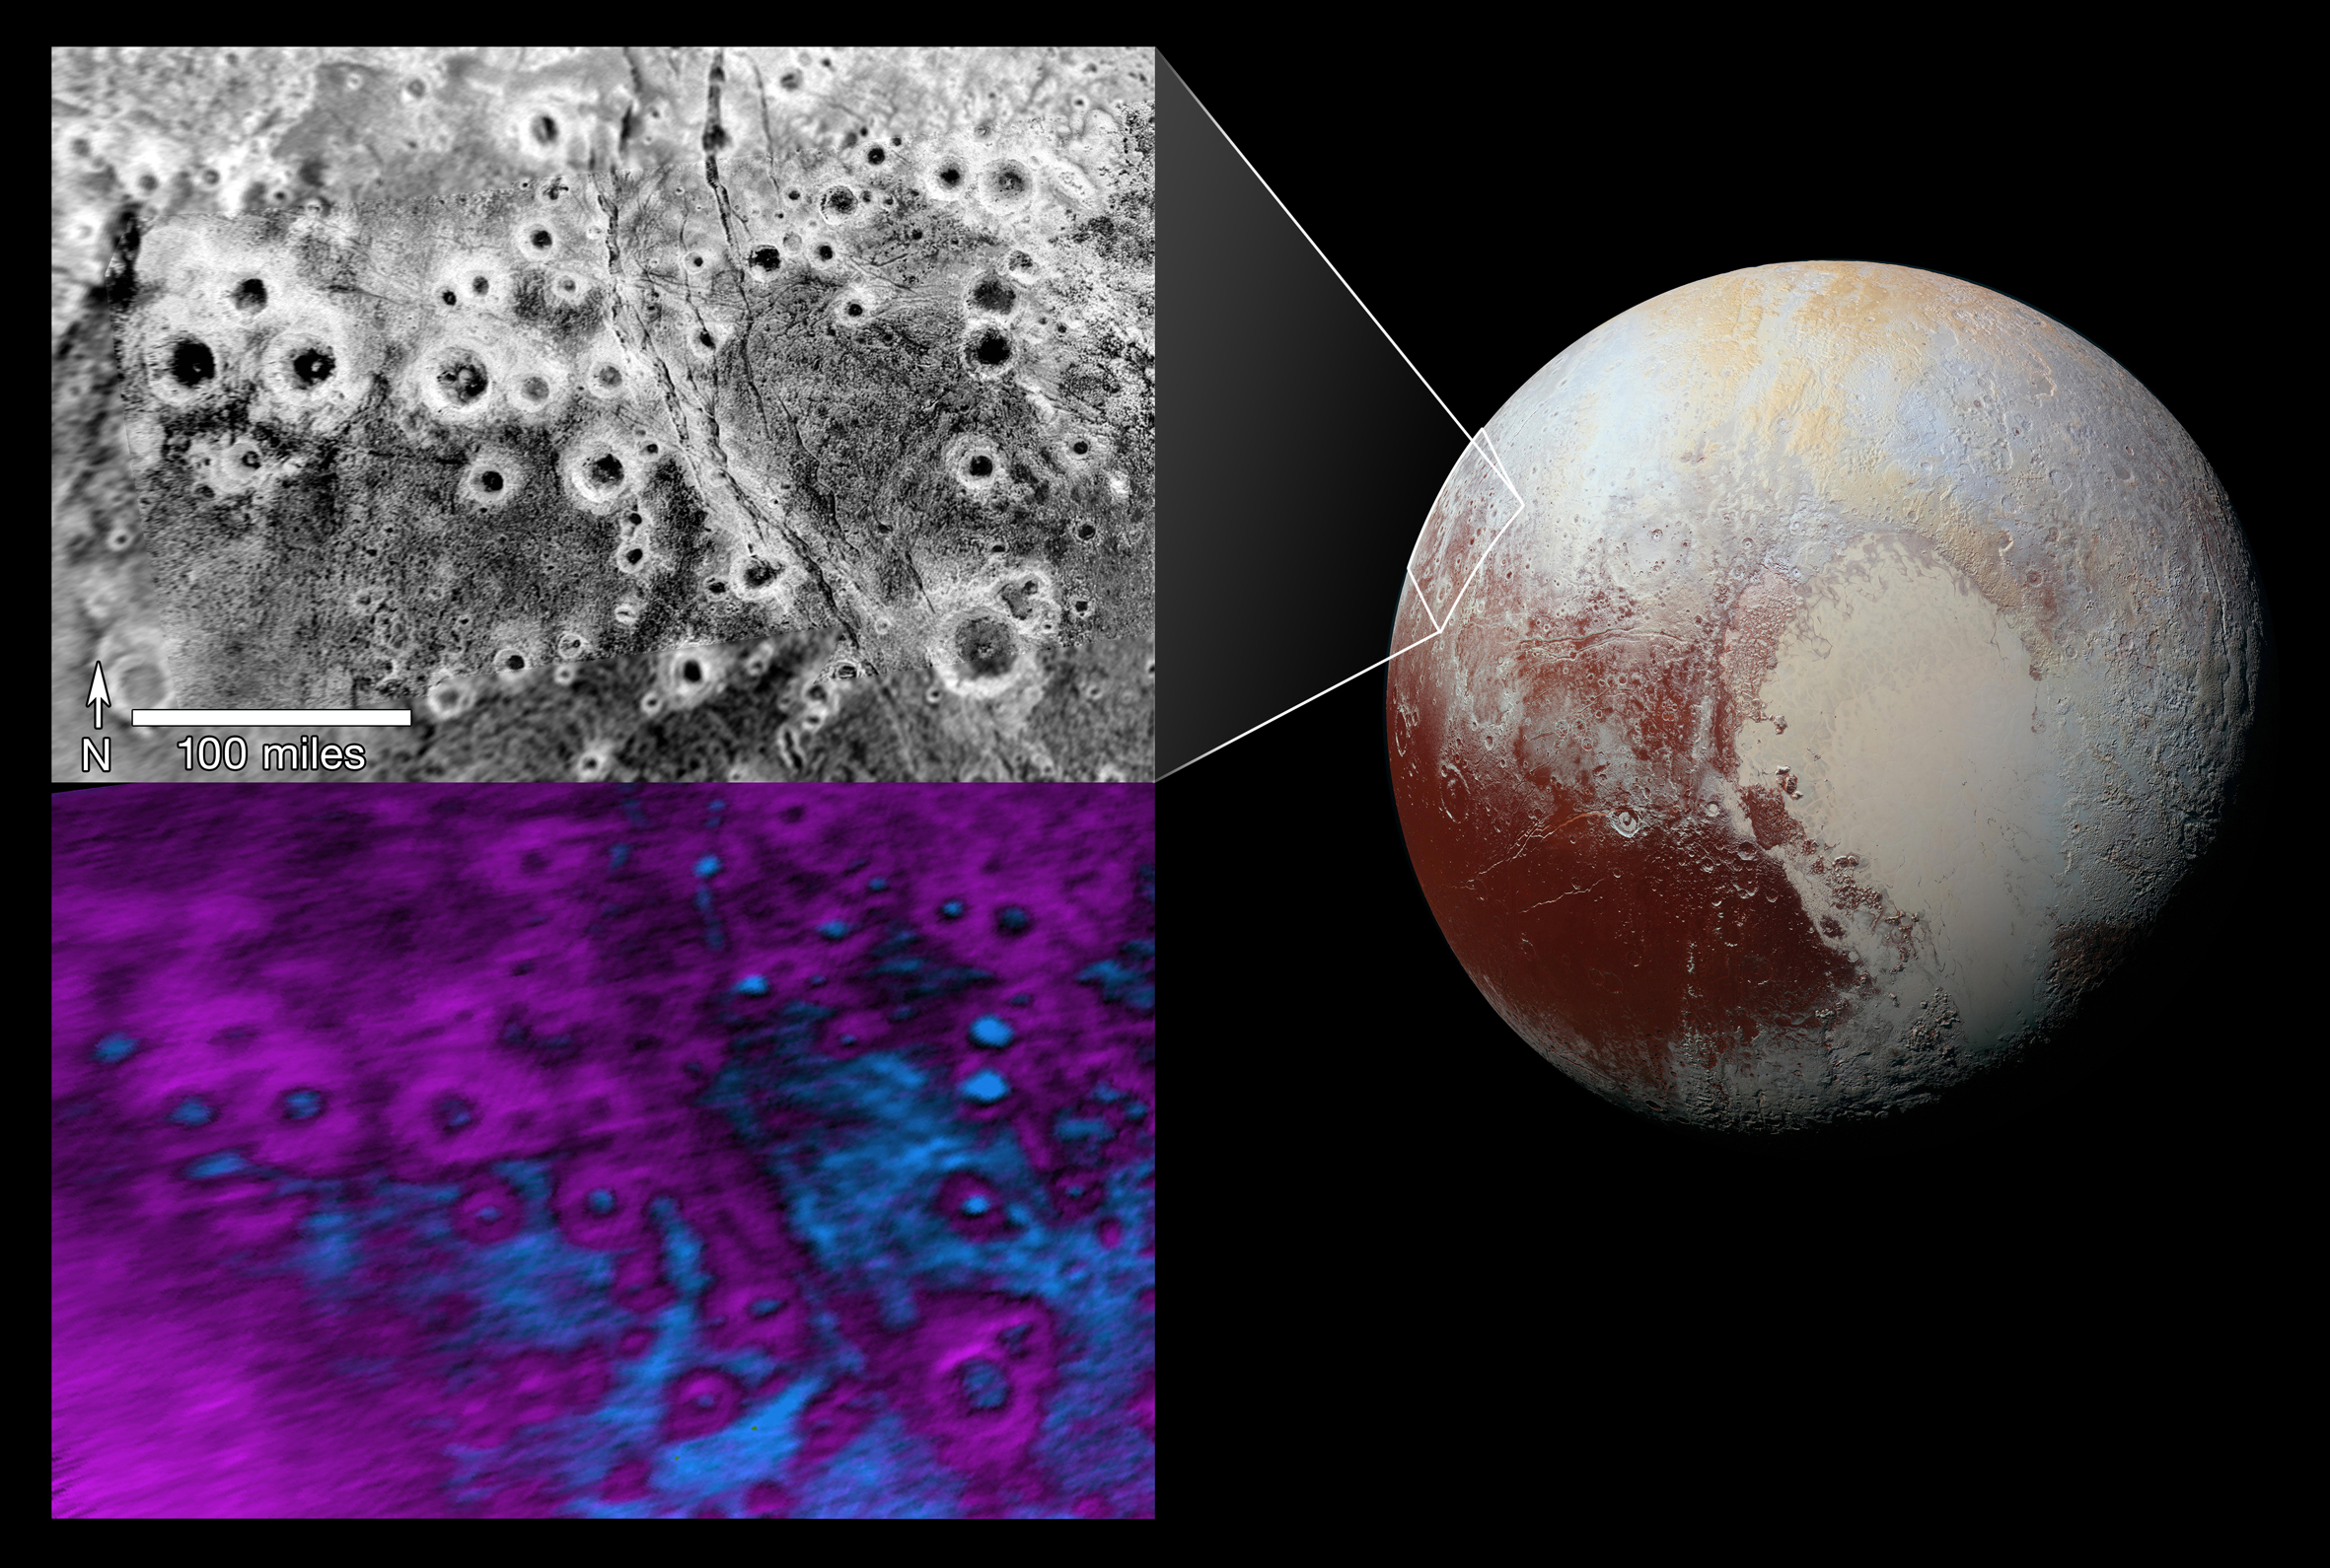 Figure 12: Halo Craters and methane distribution on Pluto. In the upper image, shown in visible light, the craters' bright rims stand out sharply from their dark floors and the surrounding terrain. In the lower image, created from composition data gathered by the Ralph/Linear Etalon Imaging Spectral Array (LEISA), there seems to be a correlation between the bright halos and distribution of methane ice, shown in false colour as purple. The floors and terrain between coloured blue, show evidence of water ice. The largest crater here is 50 km across. Credit: NASA/JHUAPL/SwRI